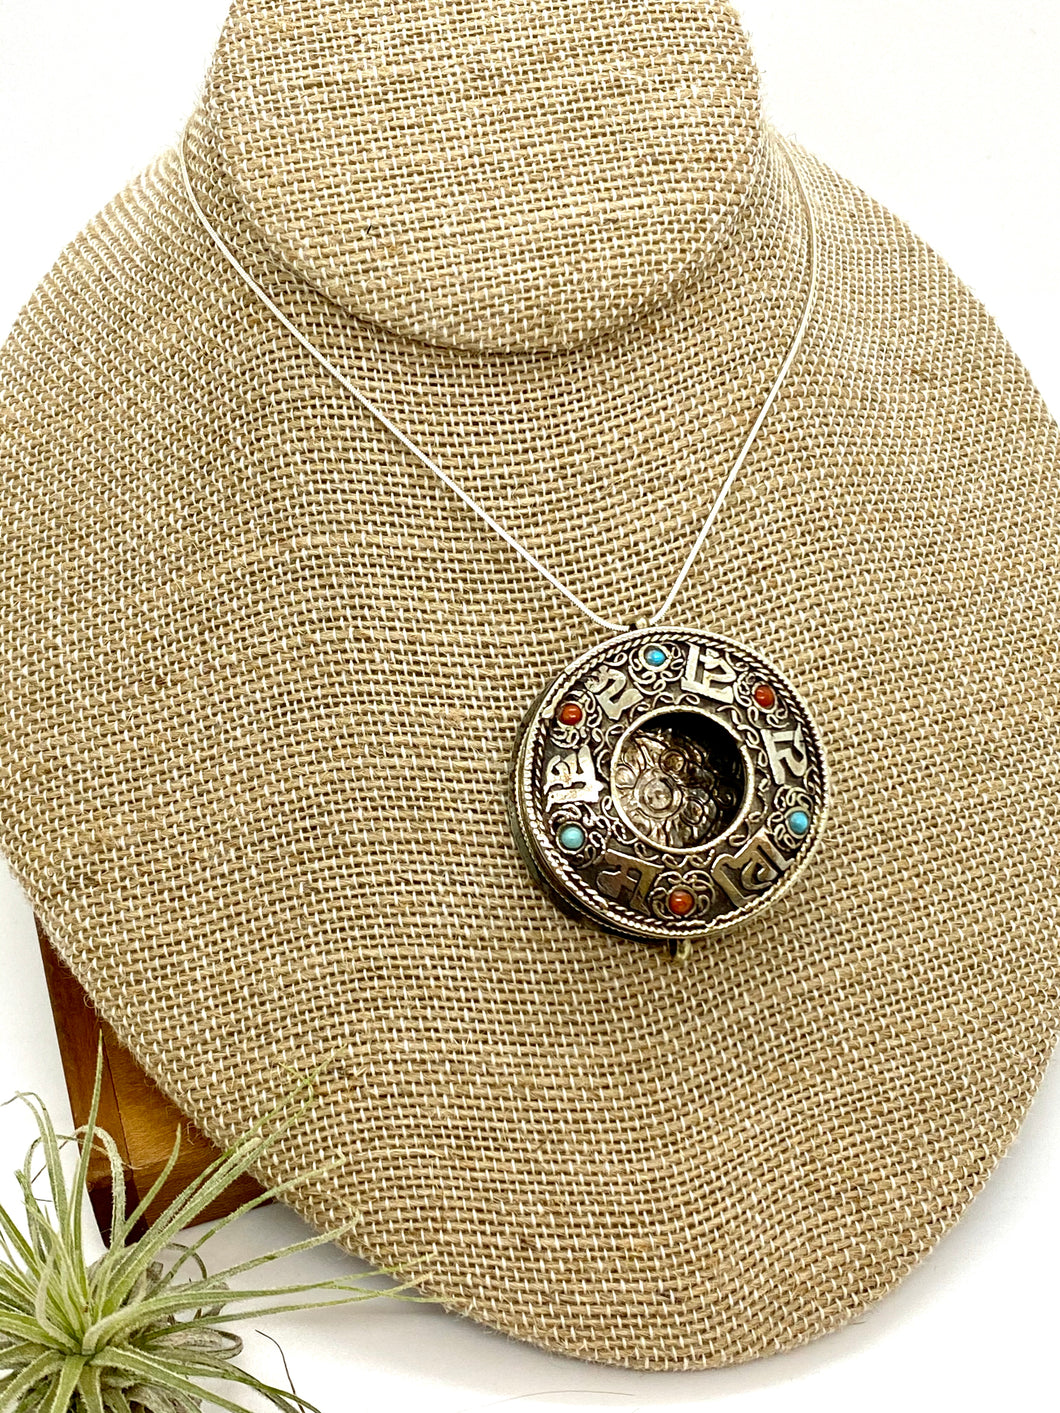 Open Tibetan Mantra Box Necklace